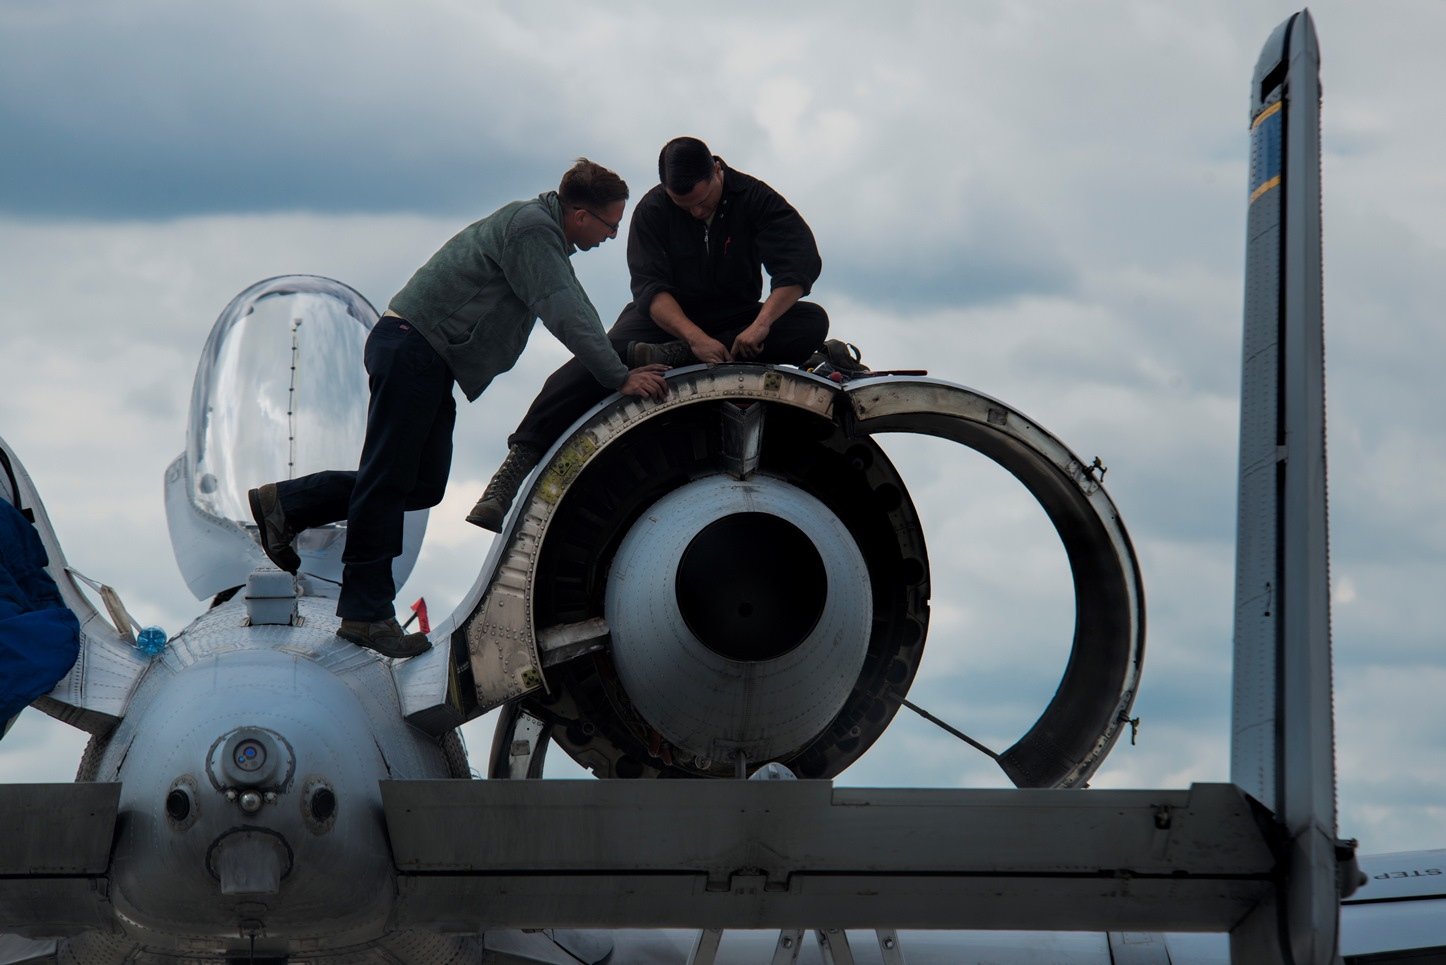 U.S. Air Force crew chiefs from the 354th Expeditionary Fighter Squadron perform maintenance on a U.S. Air Force A-10 Thunderbolt II attack aircraft engine during a theater security package deployment to Lask Air Base, Poland, July 9, 2015. The U.S. and Polish air forces will conduct training aimed to strengthen interoperability and demonstrate the countries' shared commitment to the security and stability of Europe. (U.S. Air Force photo by Staff Sgt. Christopher Ruano/Released)